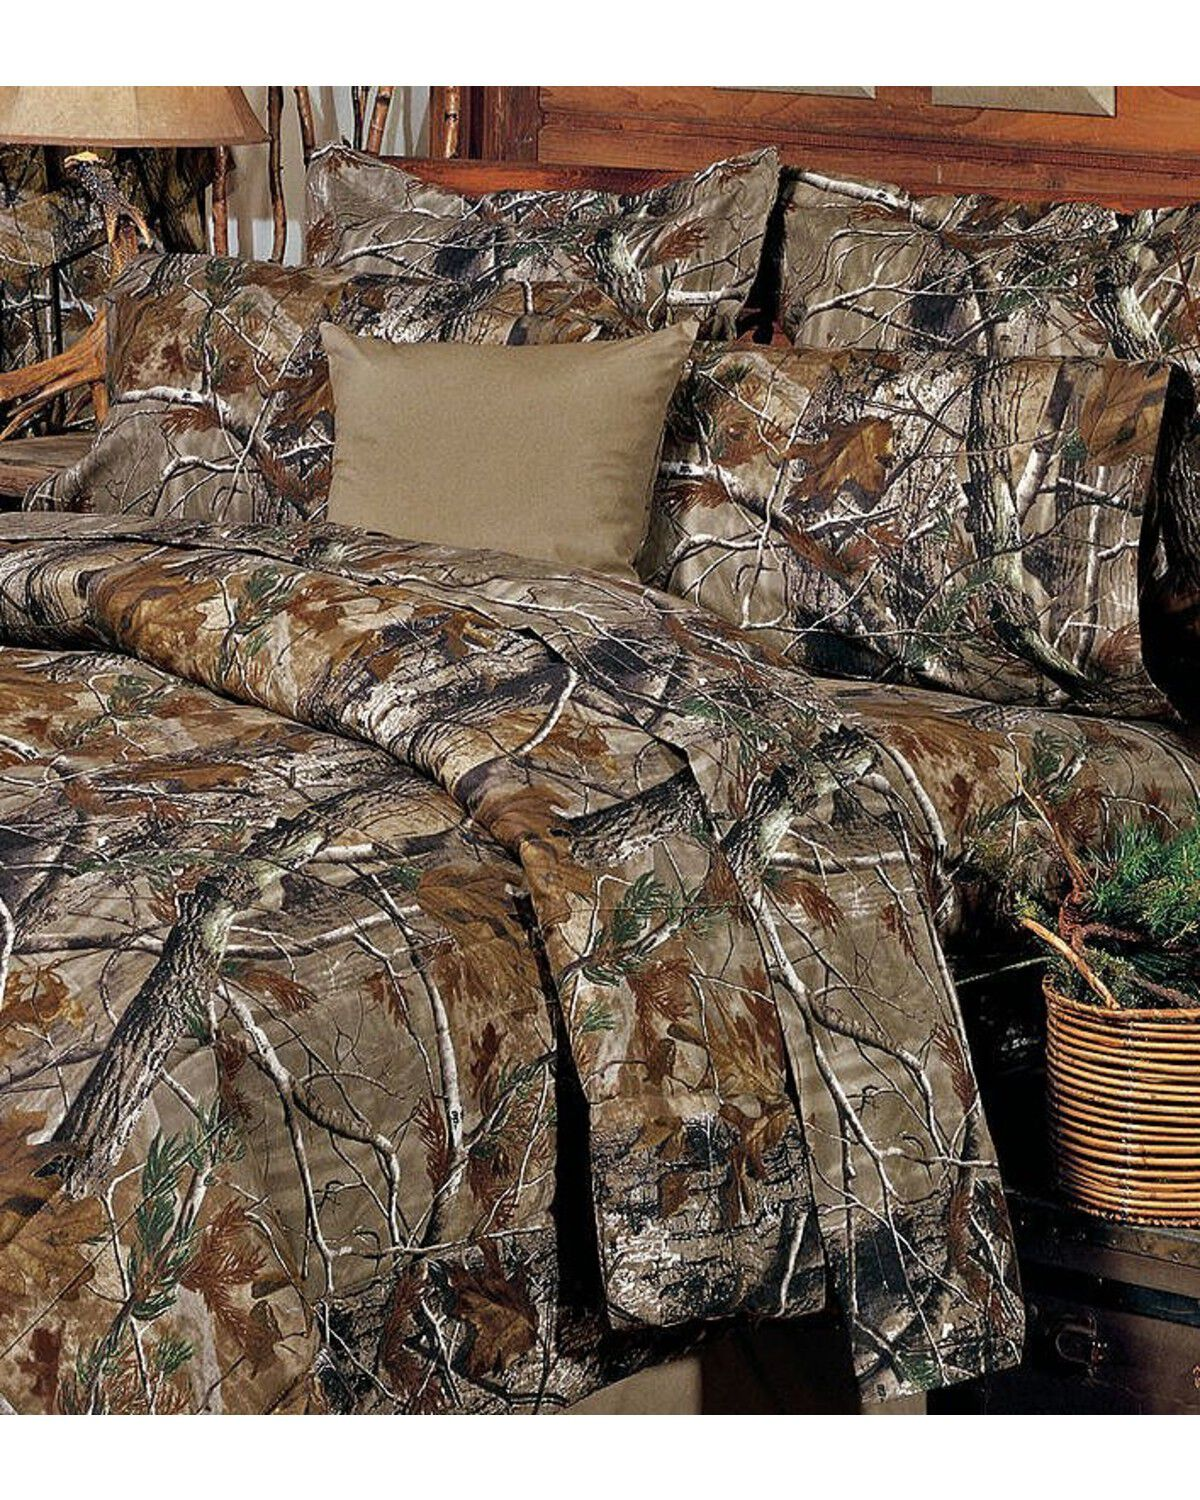 Realtree Camo Twin Sheet Set, Camouflage, Hi Res